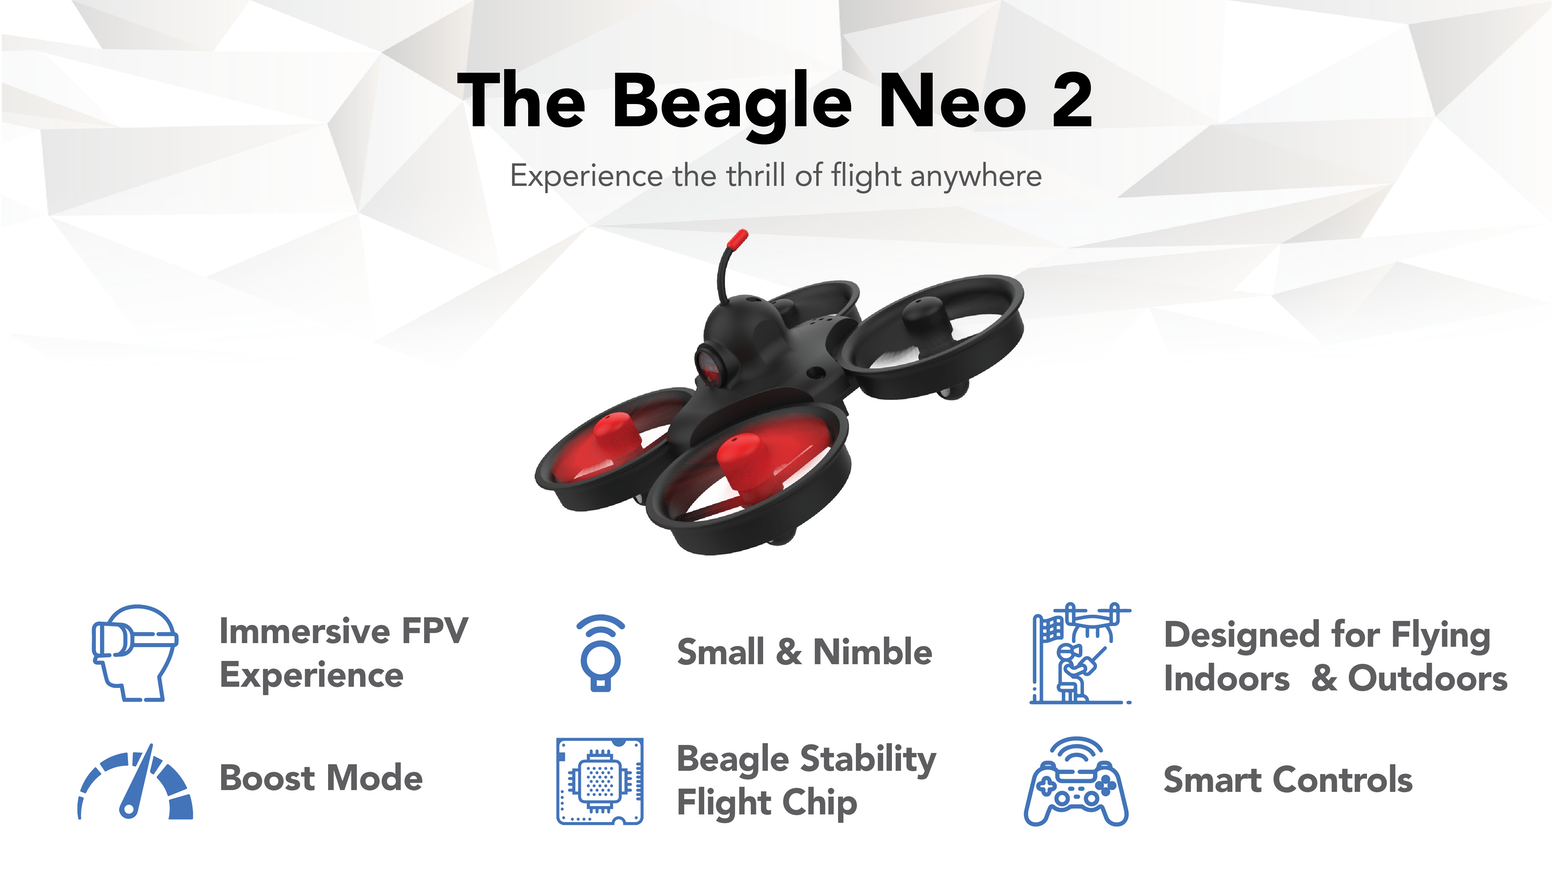 A feature-loaded experience like none other. We've created a fully immersive drone that fits in the palm of your hand.